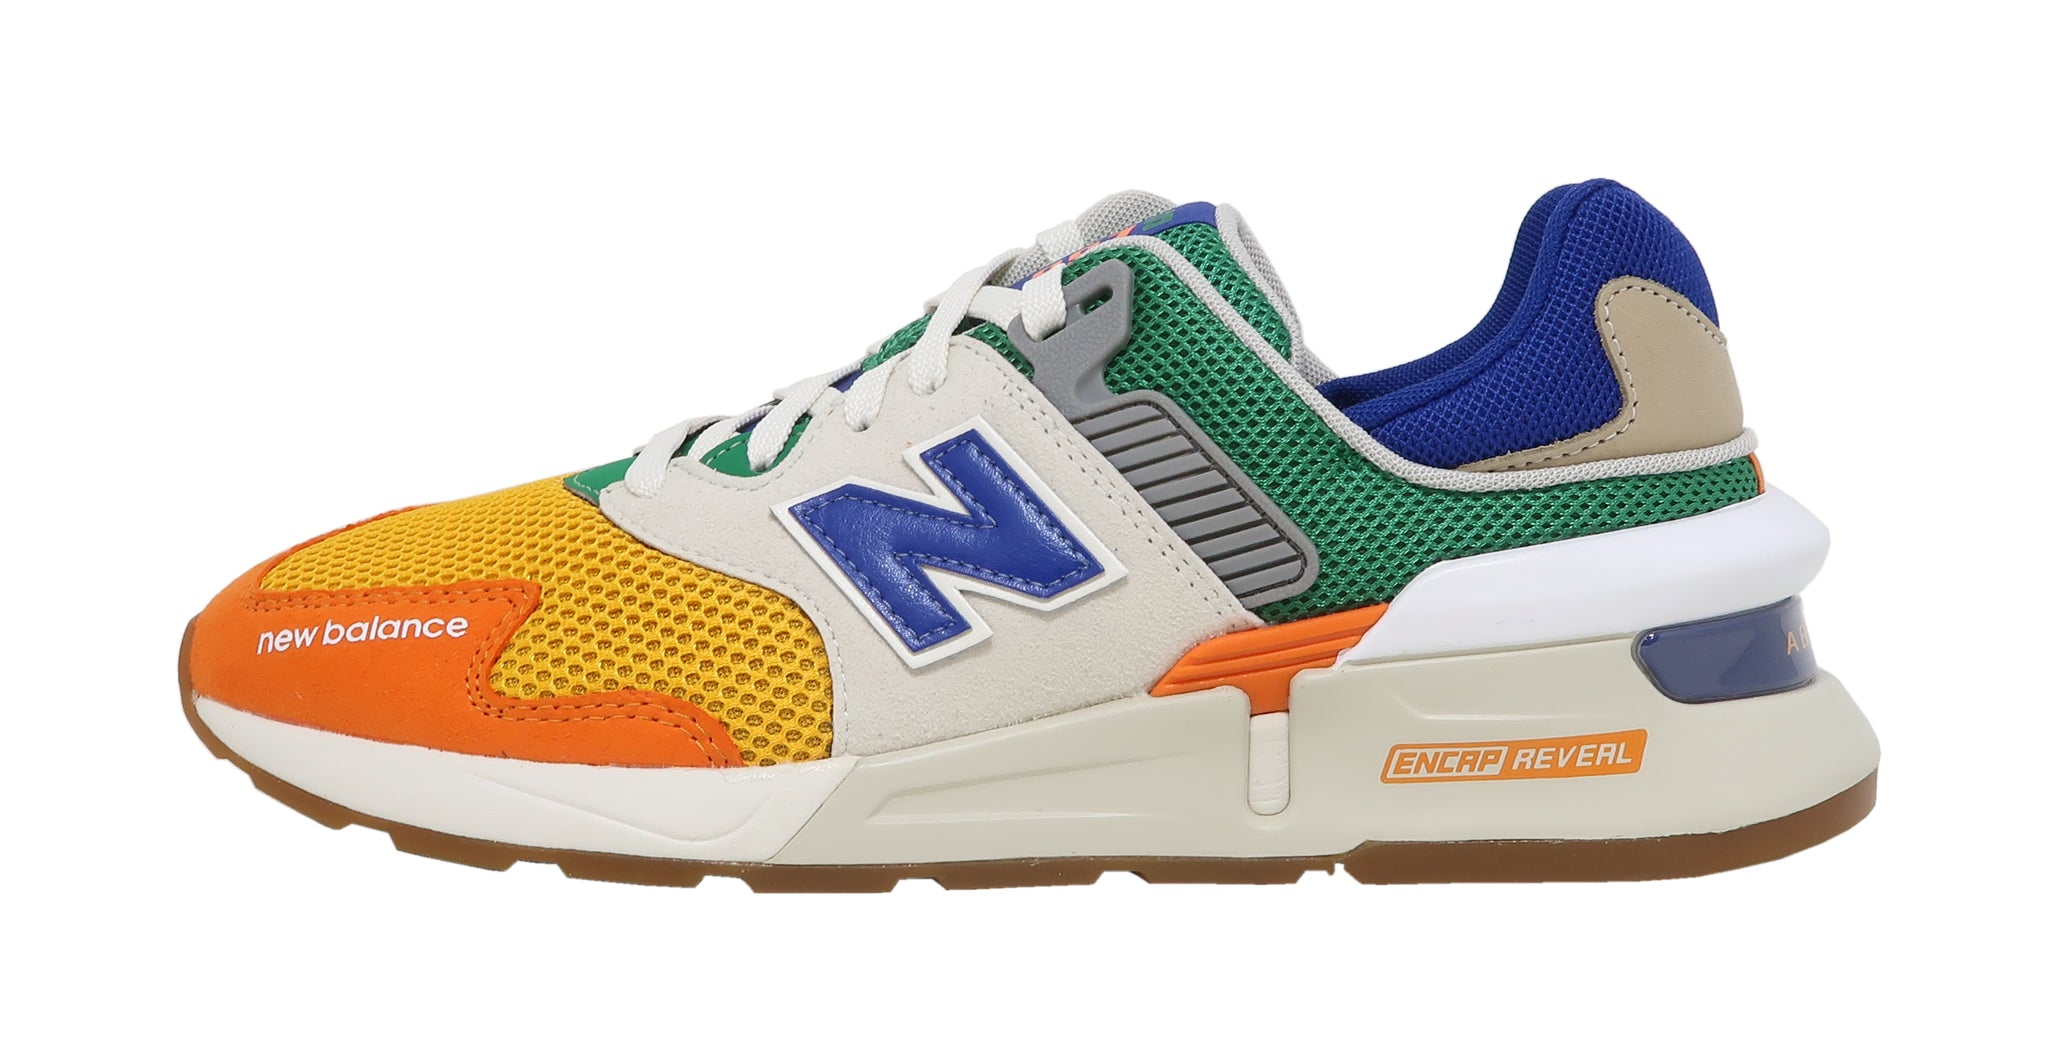 New Balance 997S Orange/Green Lifestyle Men Shoes